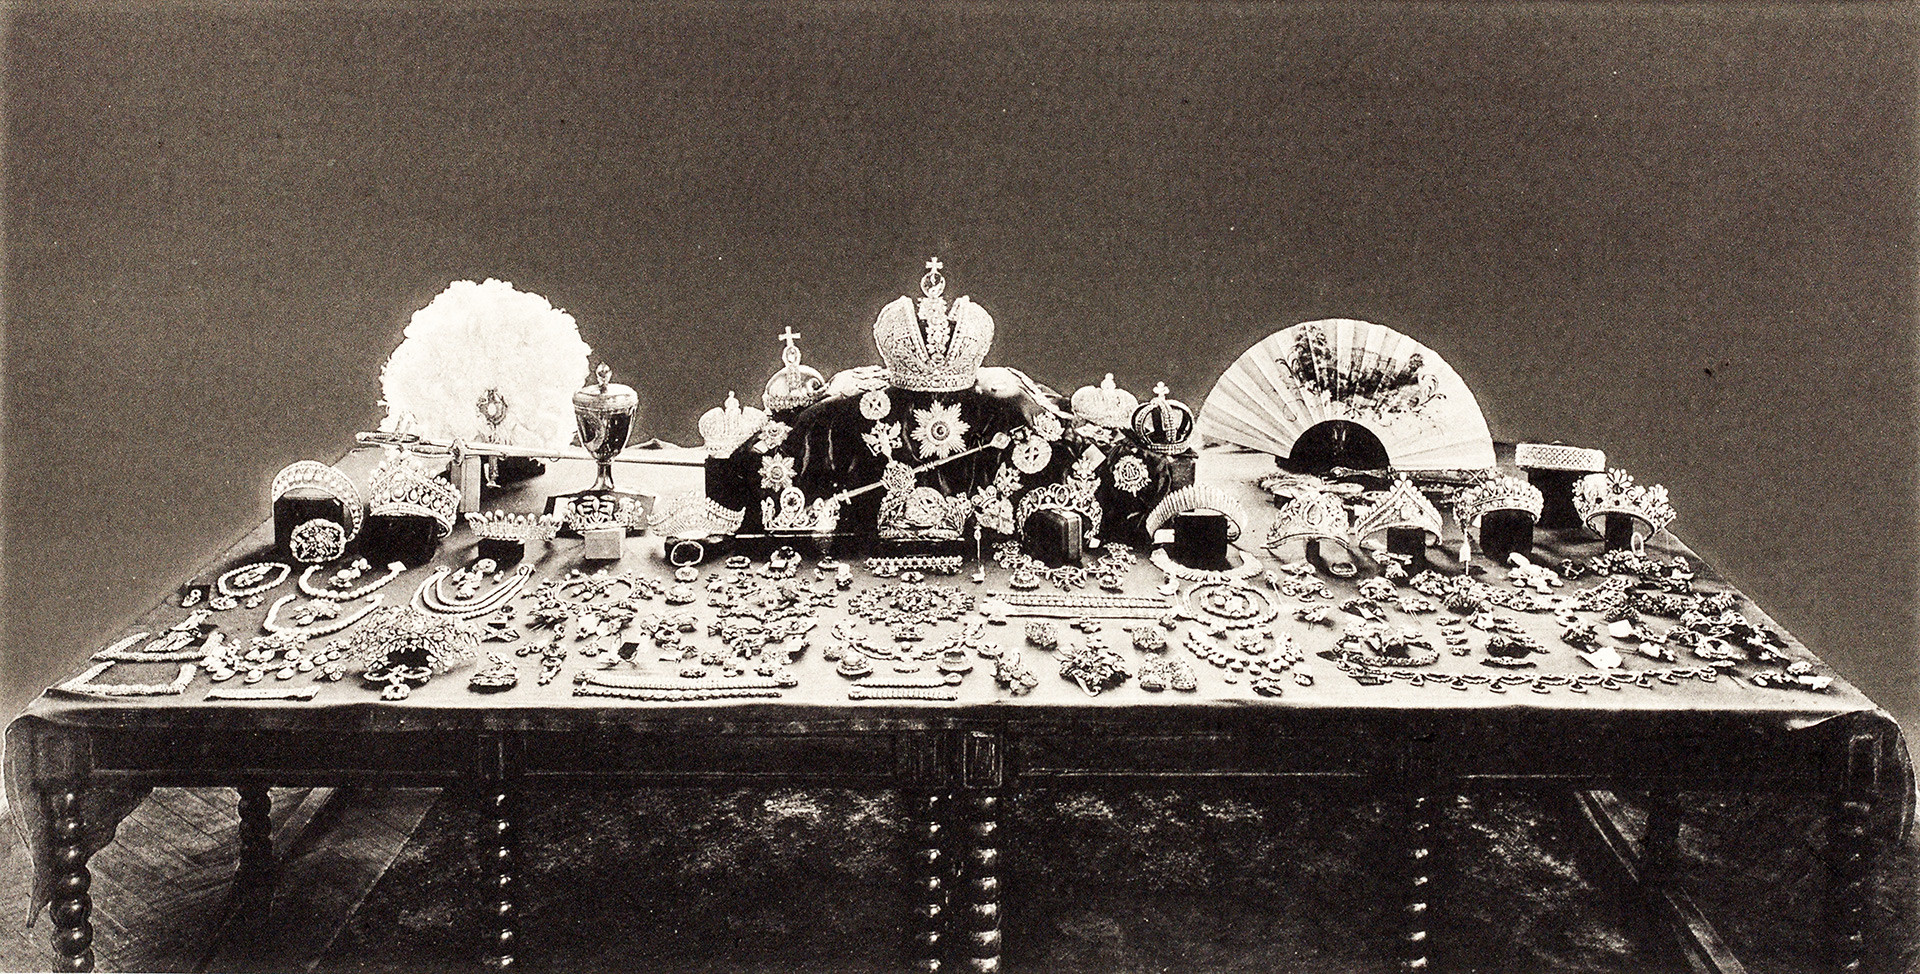 The famous photo taken by the Soviet commission in 1922 shows the large part of the Romanov crown jewelry collection.